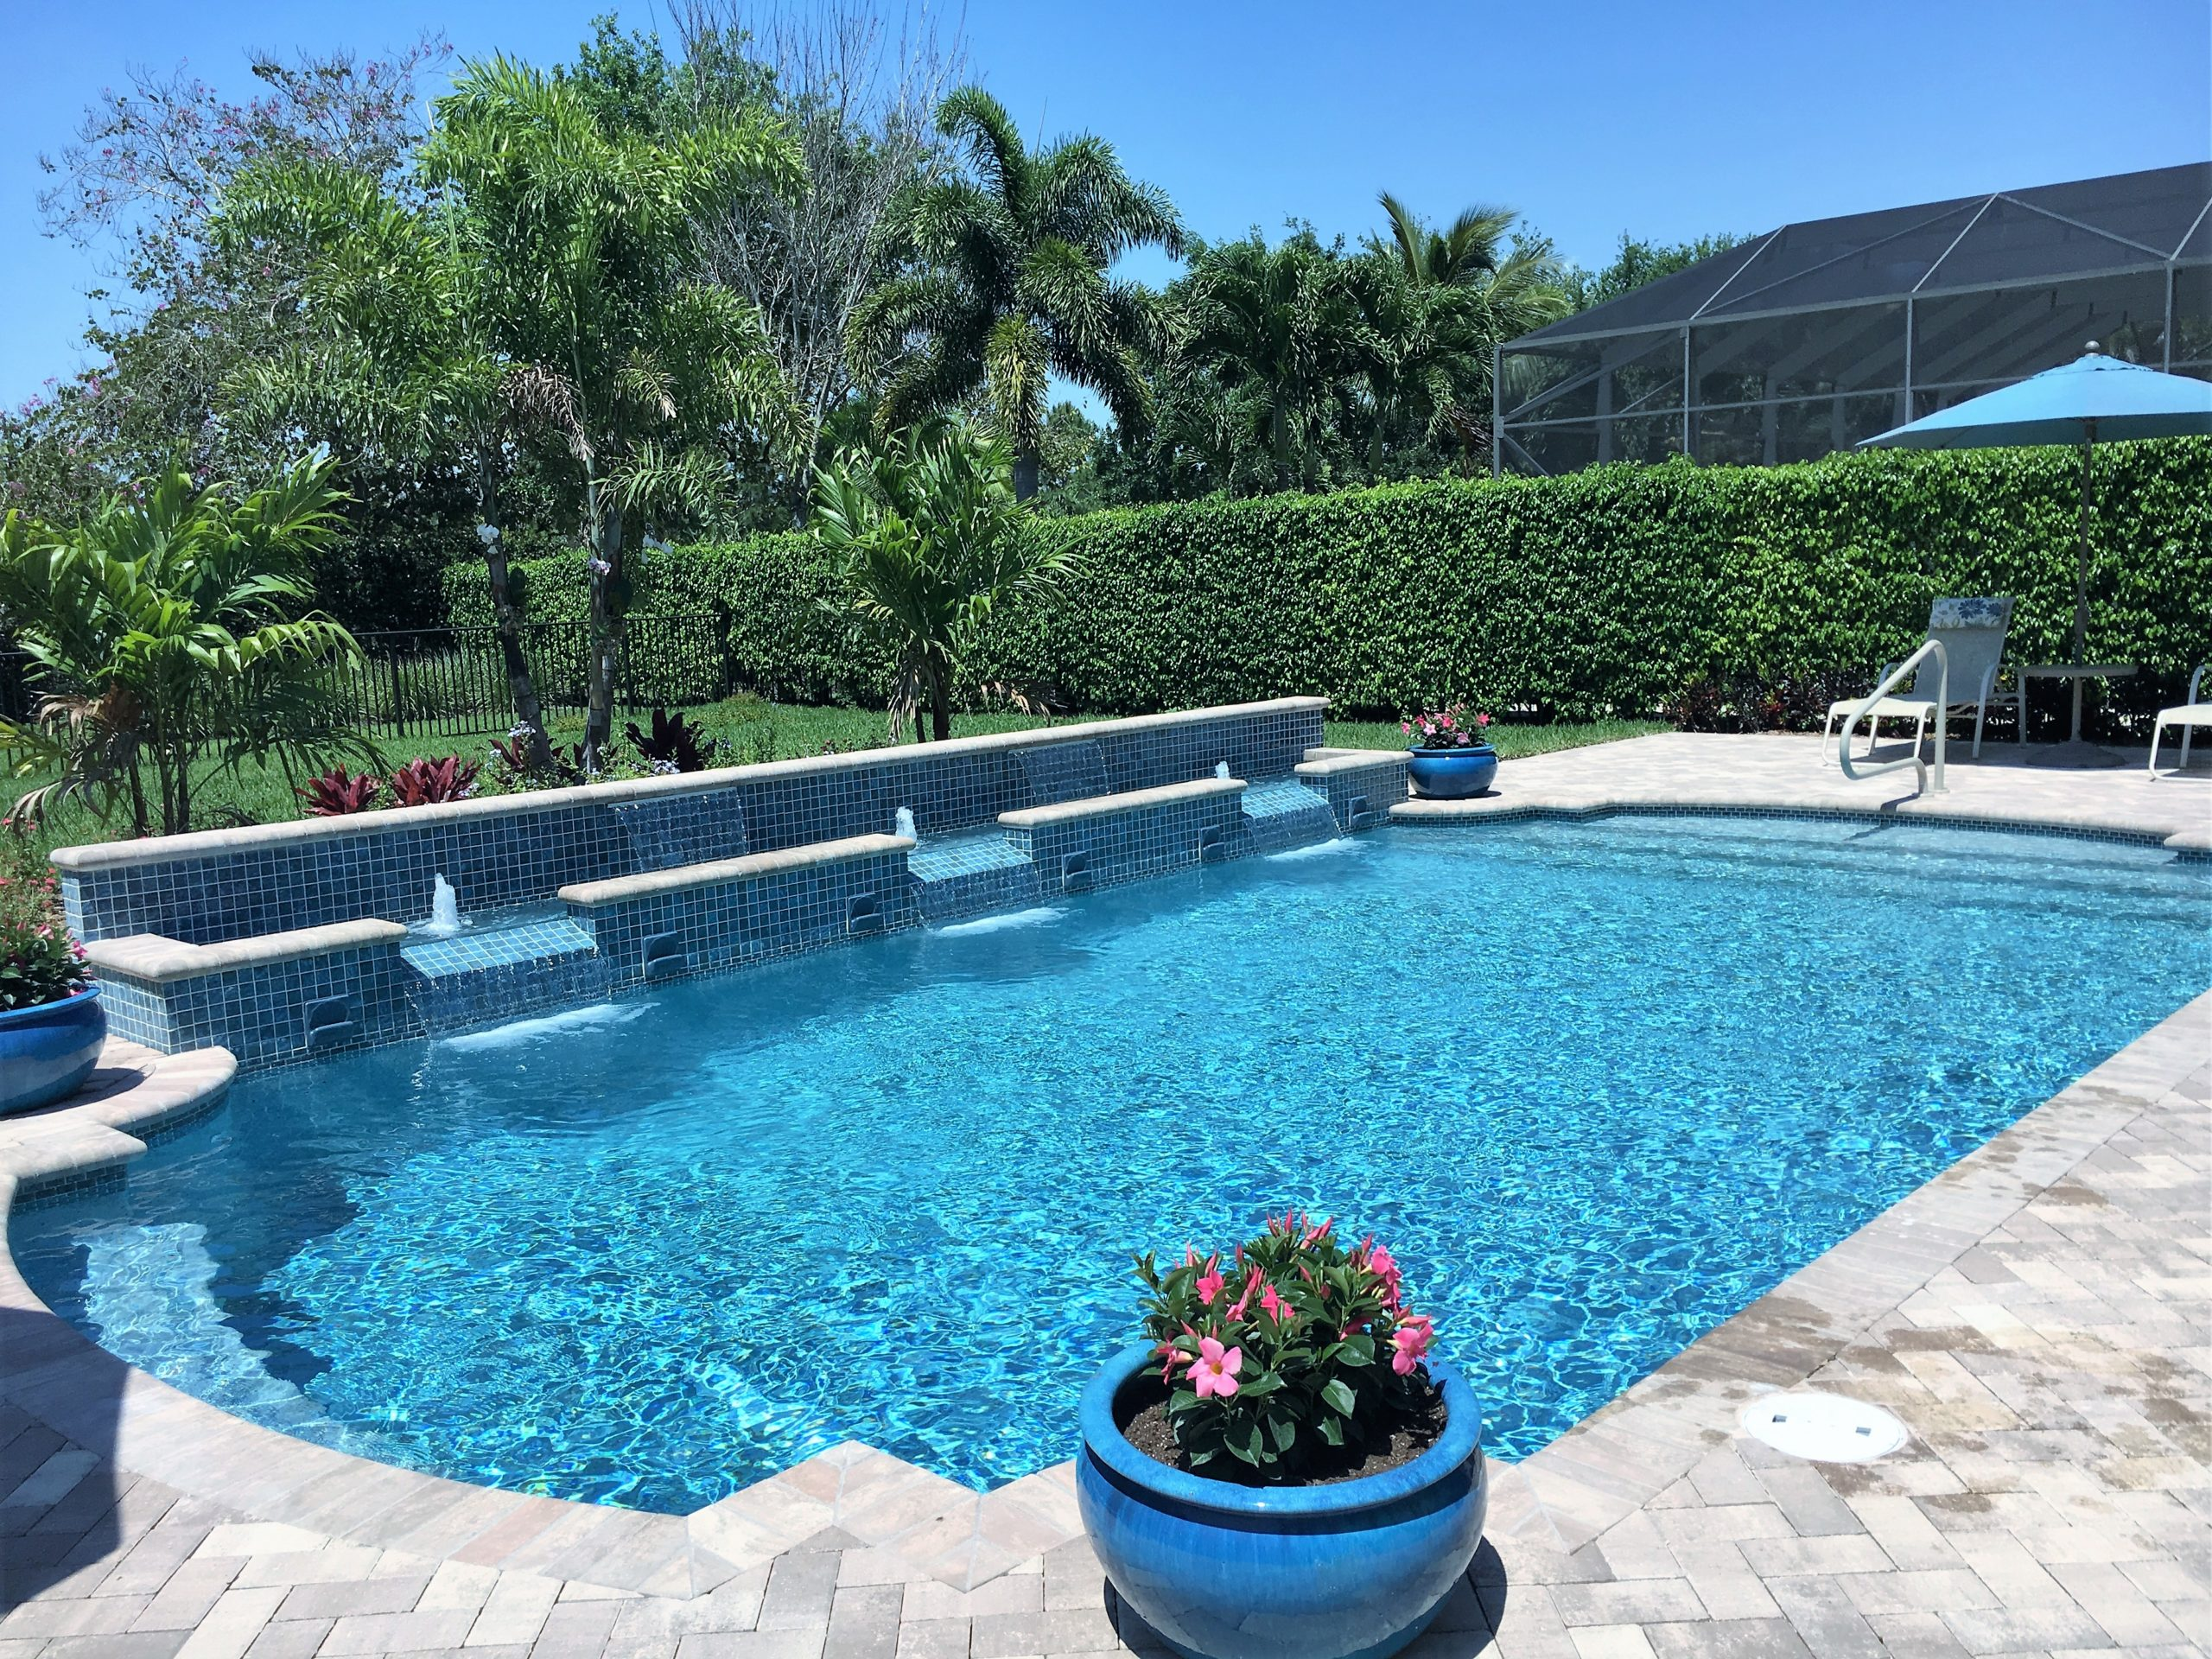 rhr pools of jupiter fl classic shaped pool with waterfeatures